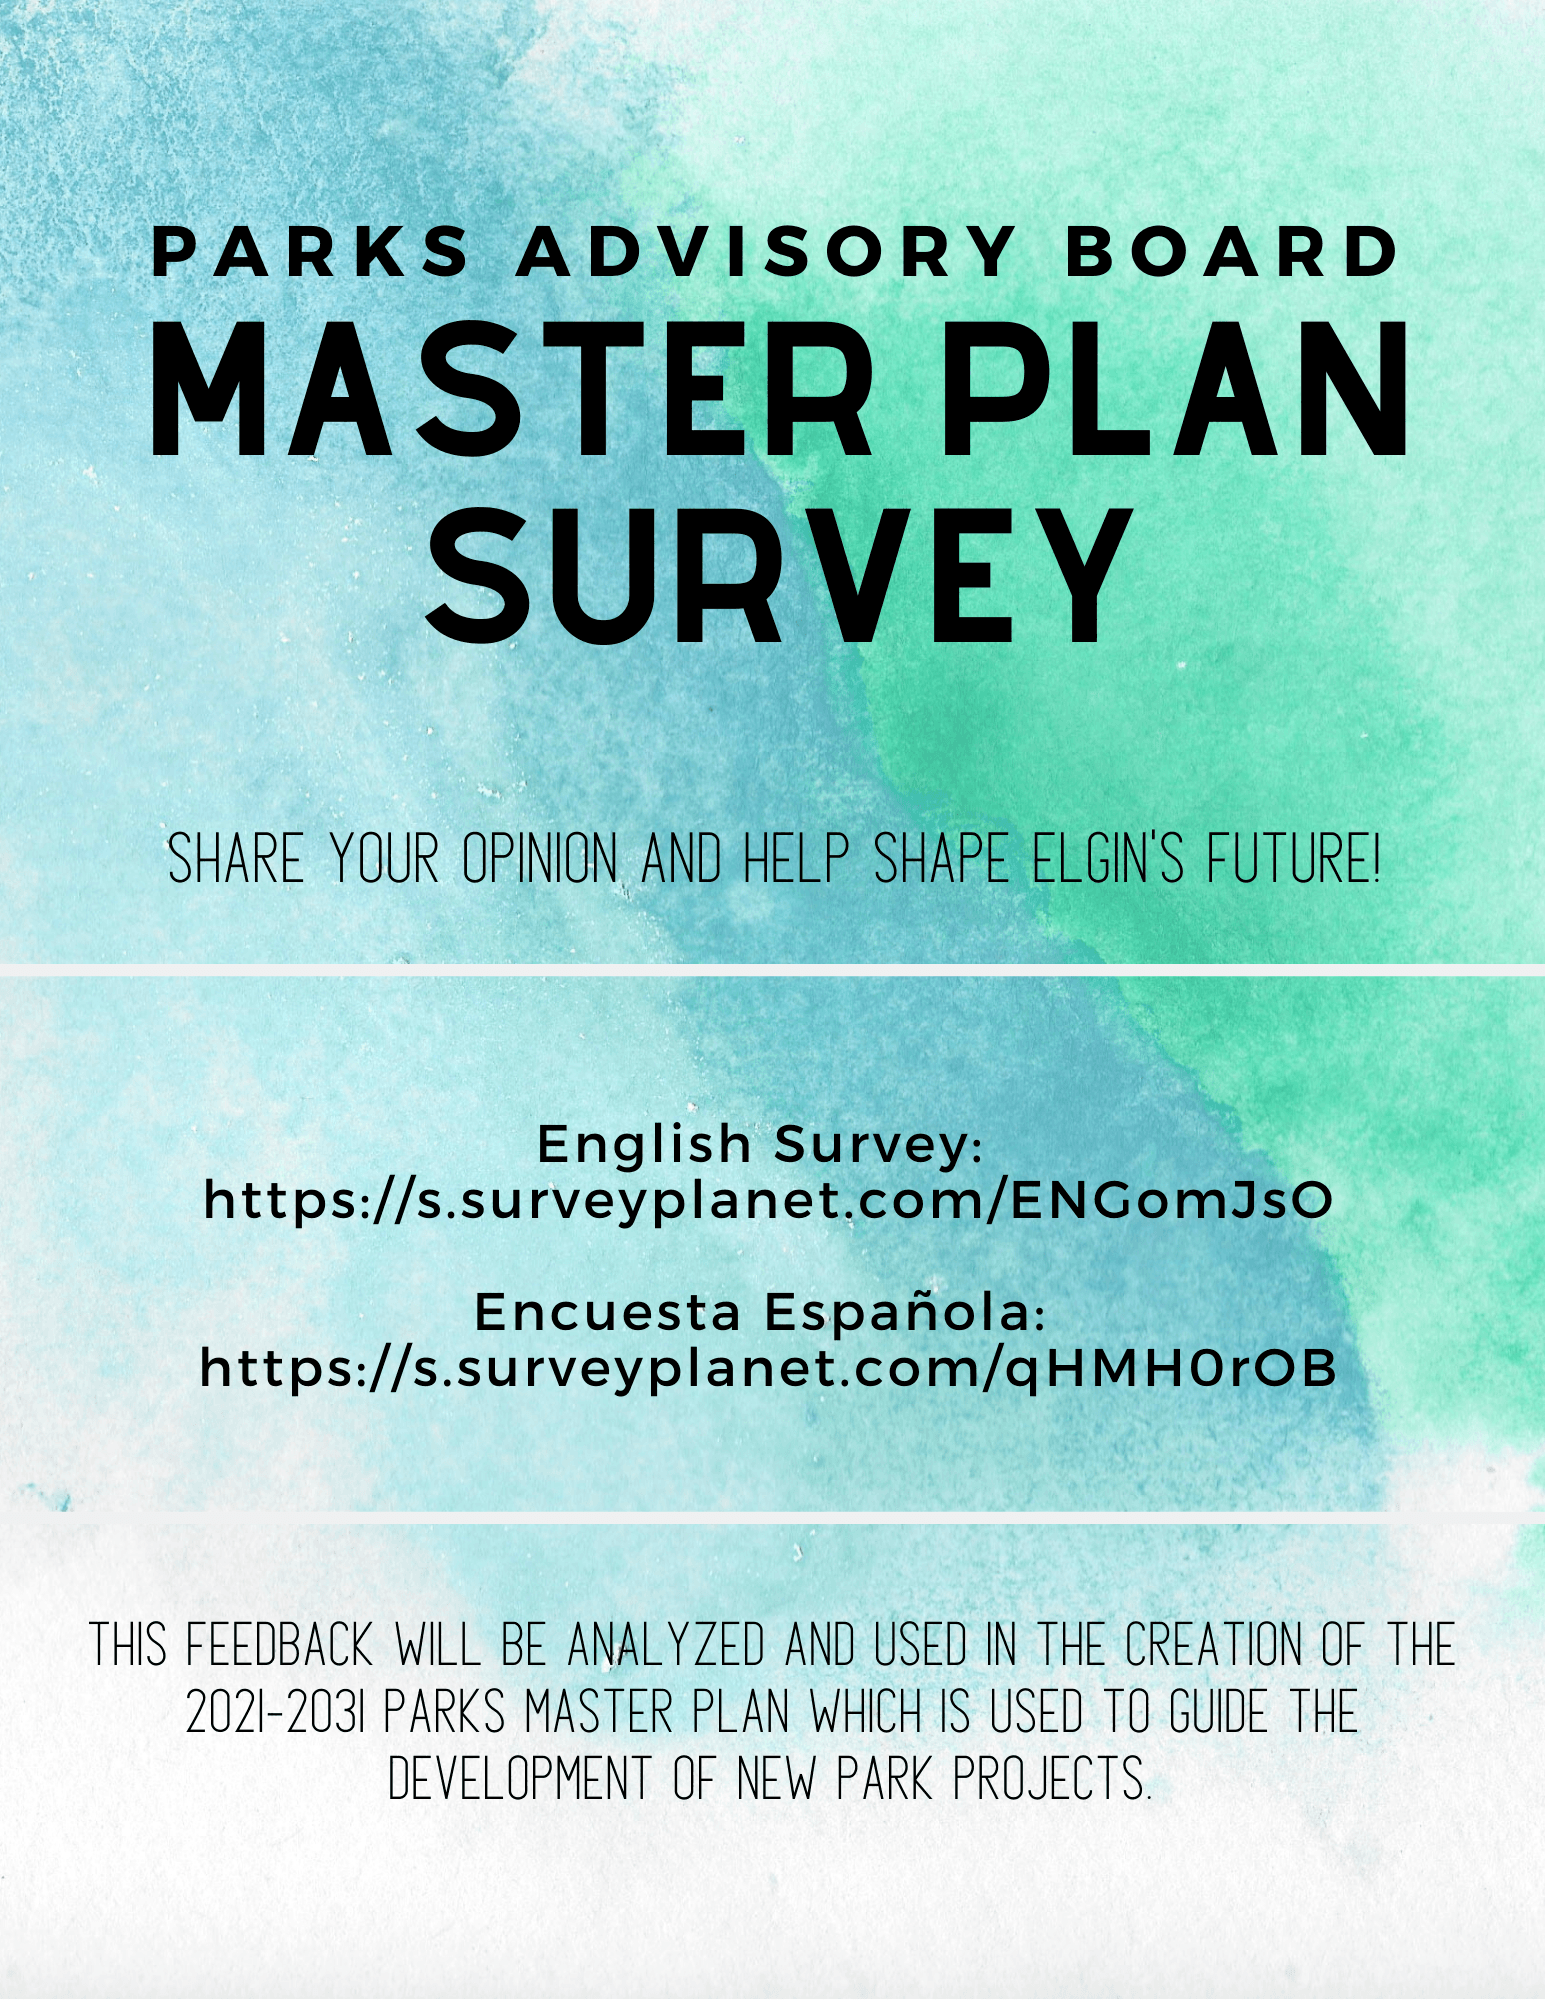 parks master plan survey flyer